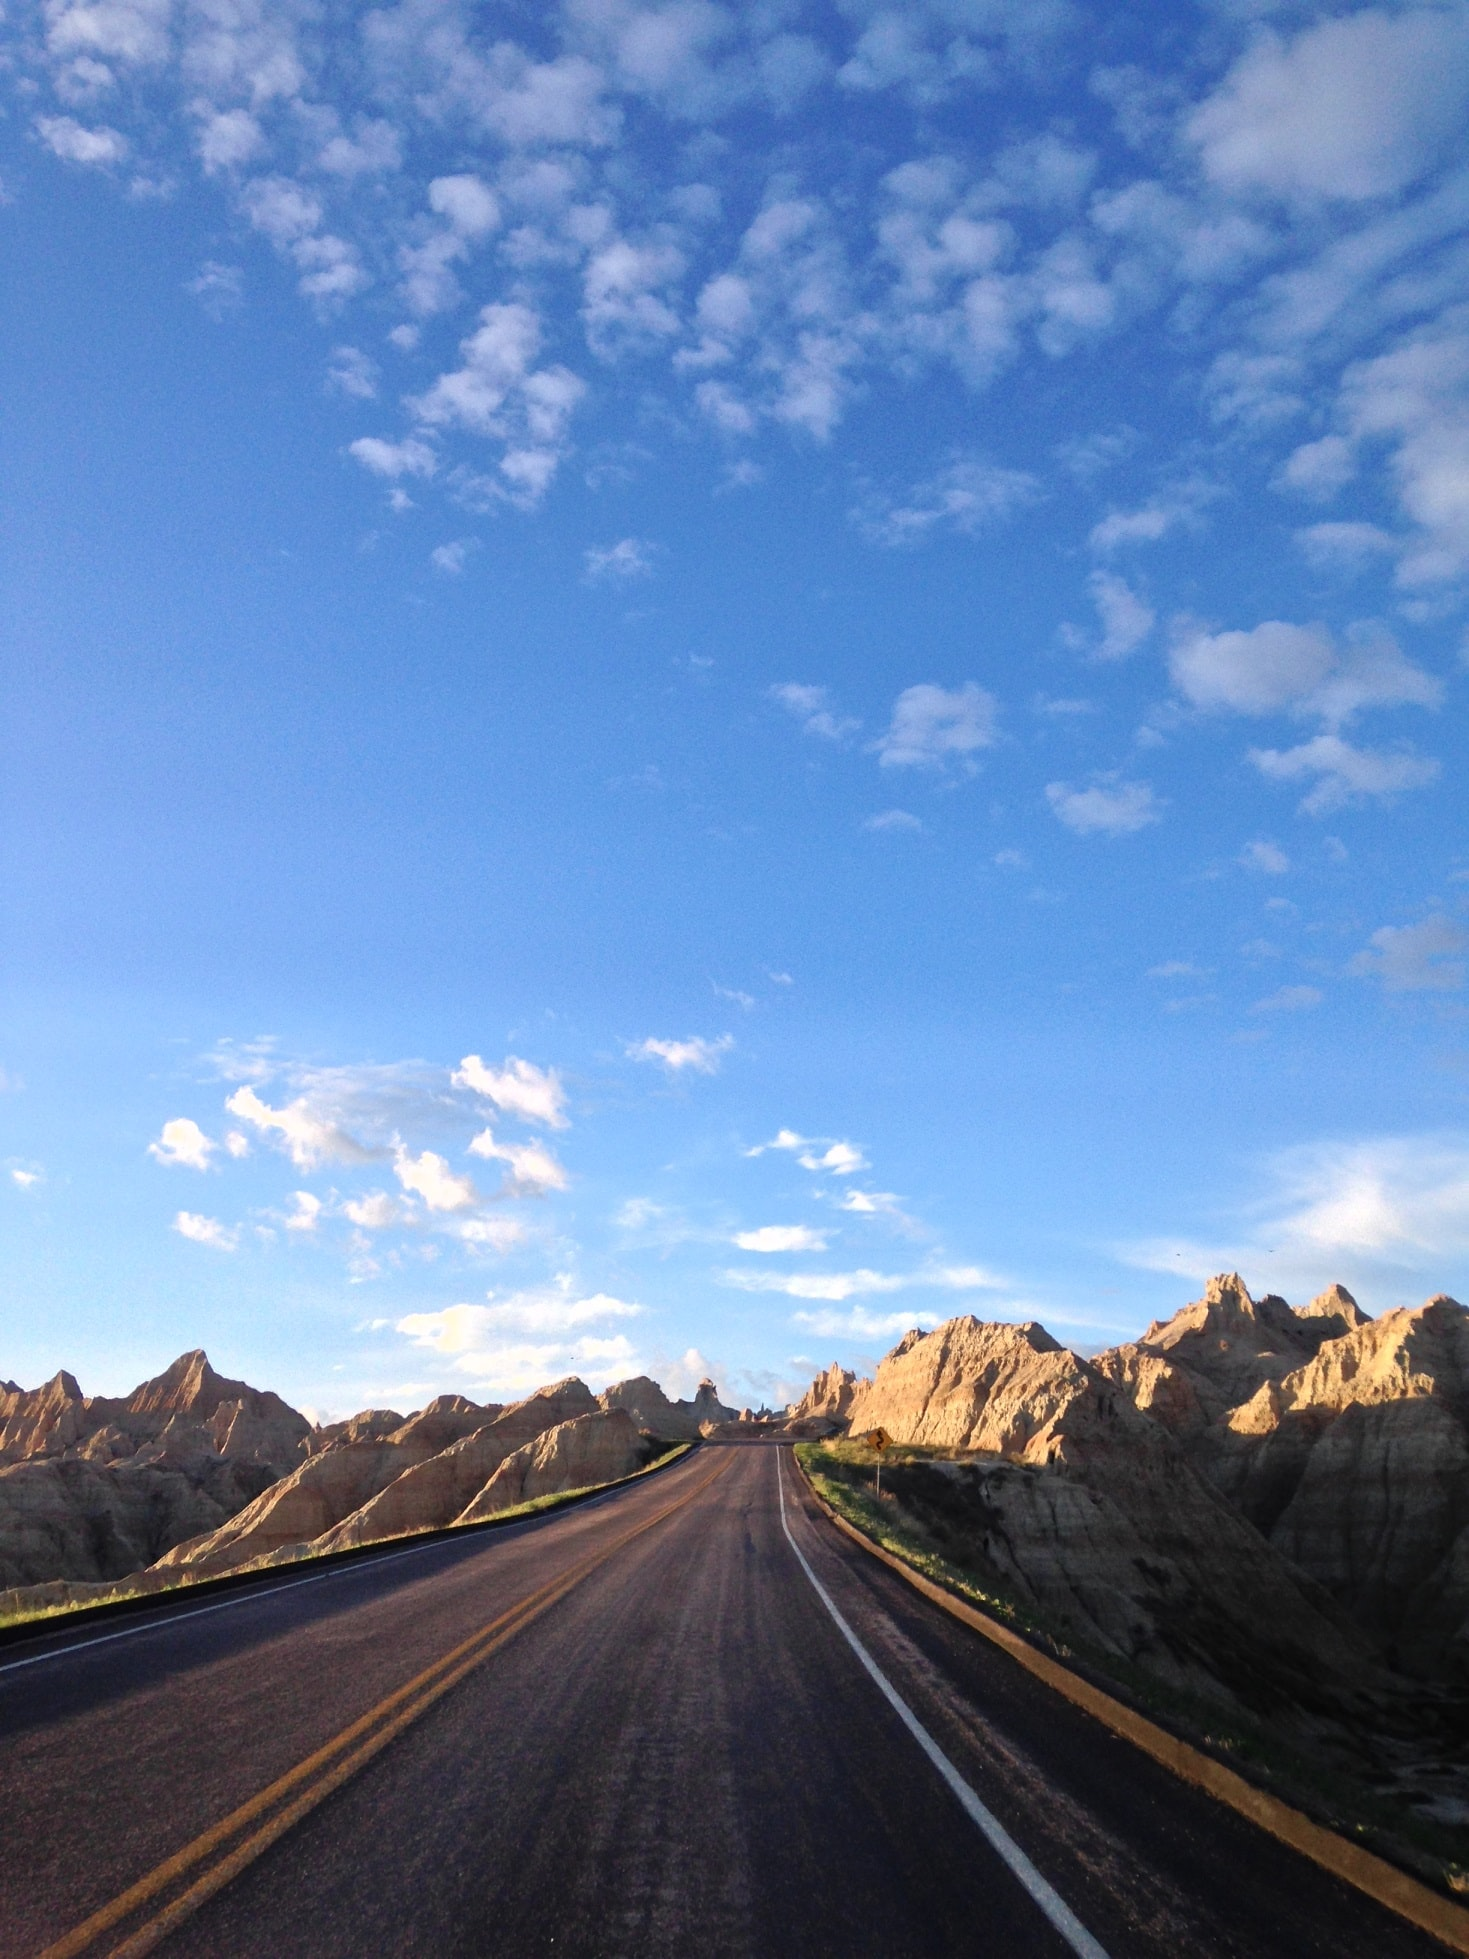 A highway surrounded by rocky hills and blue skies with clouds